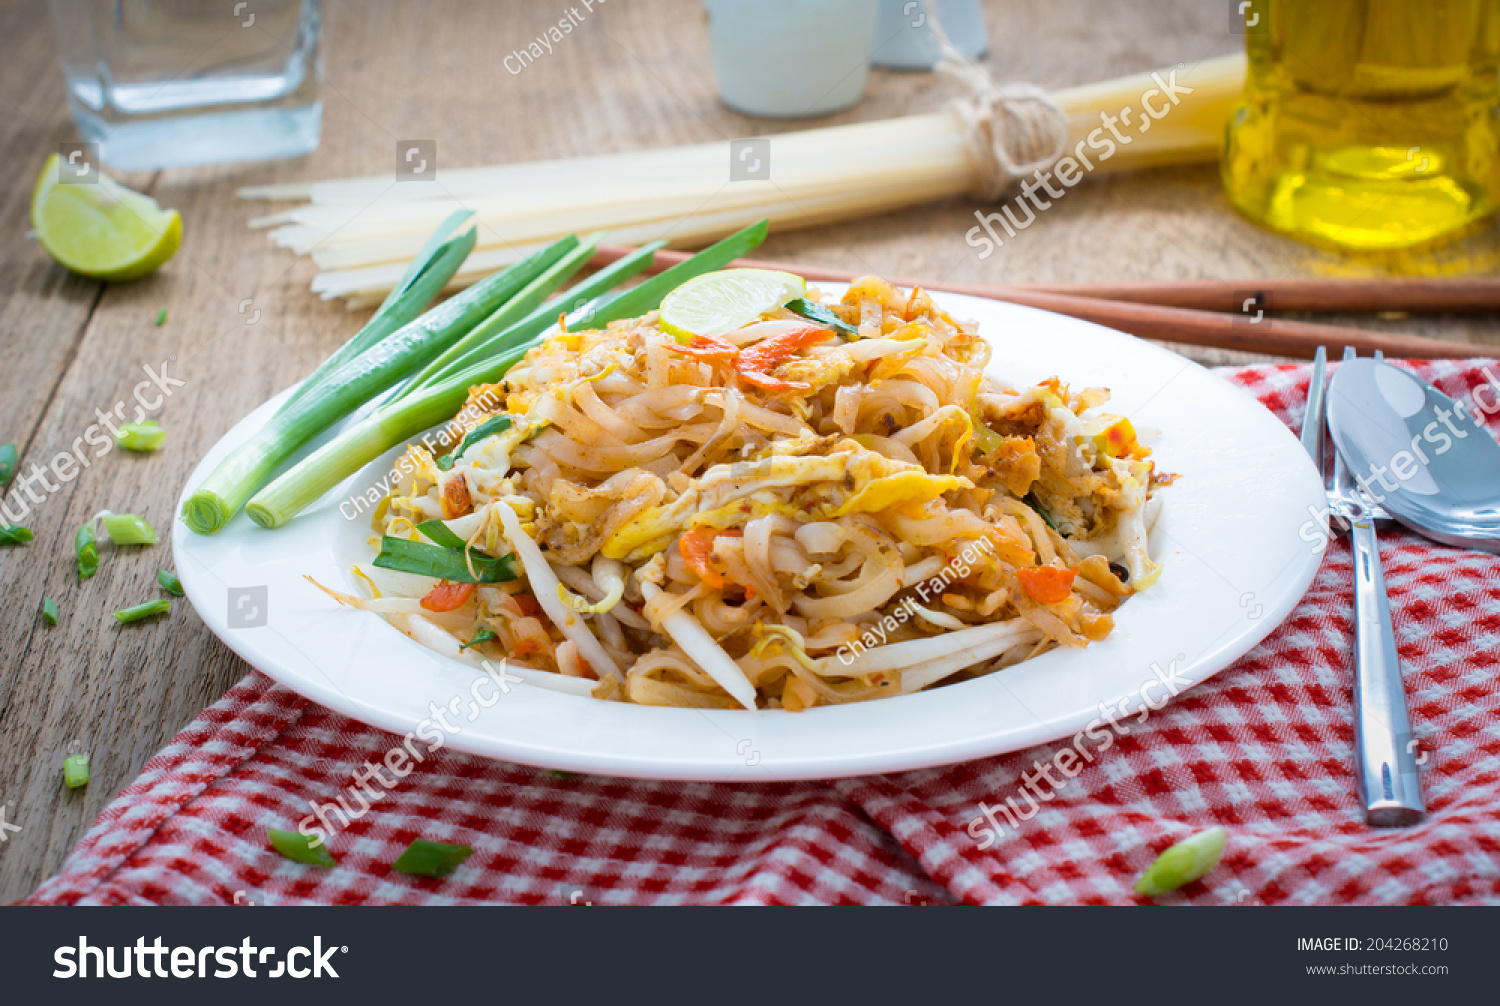 how to cook rice noodles for pad thai